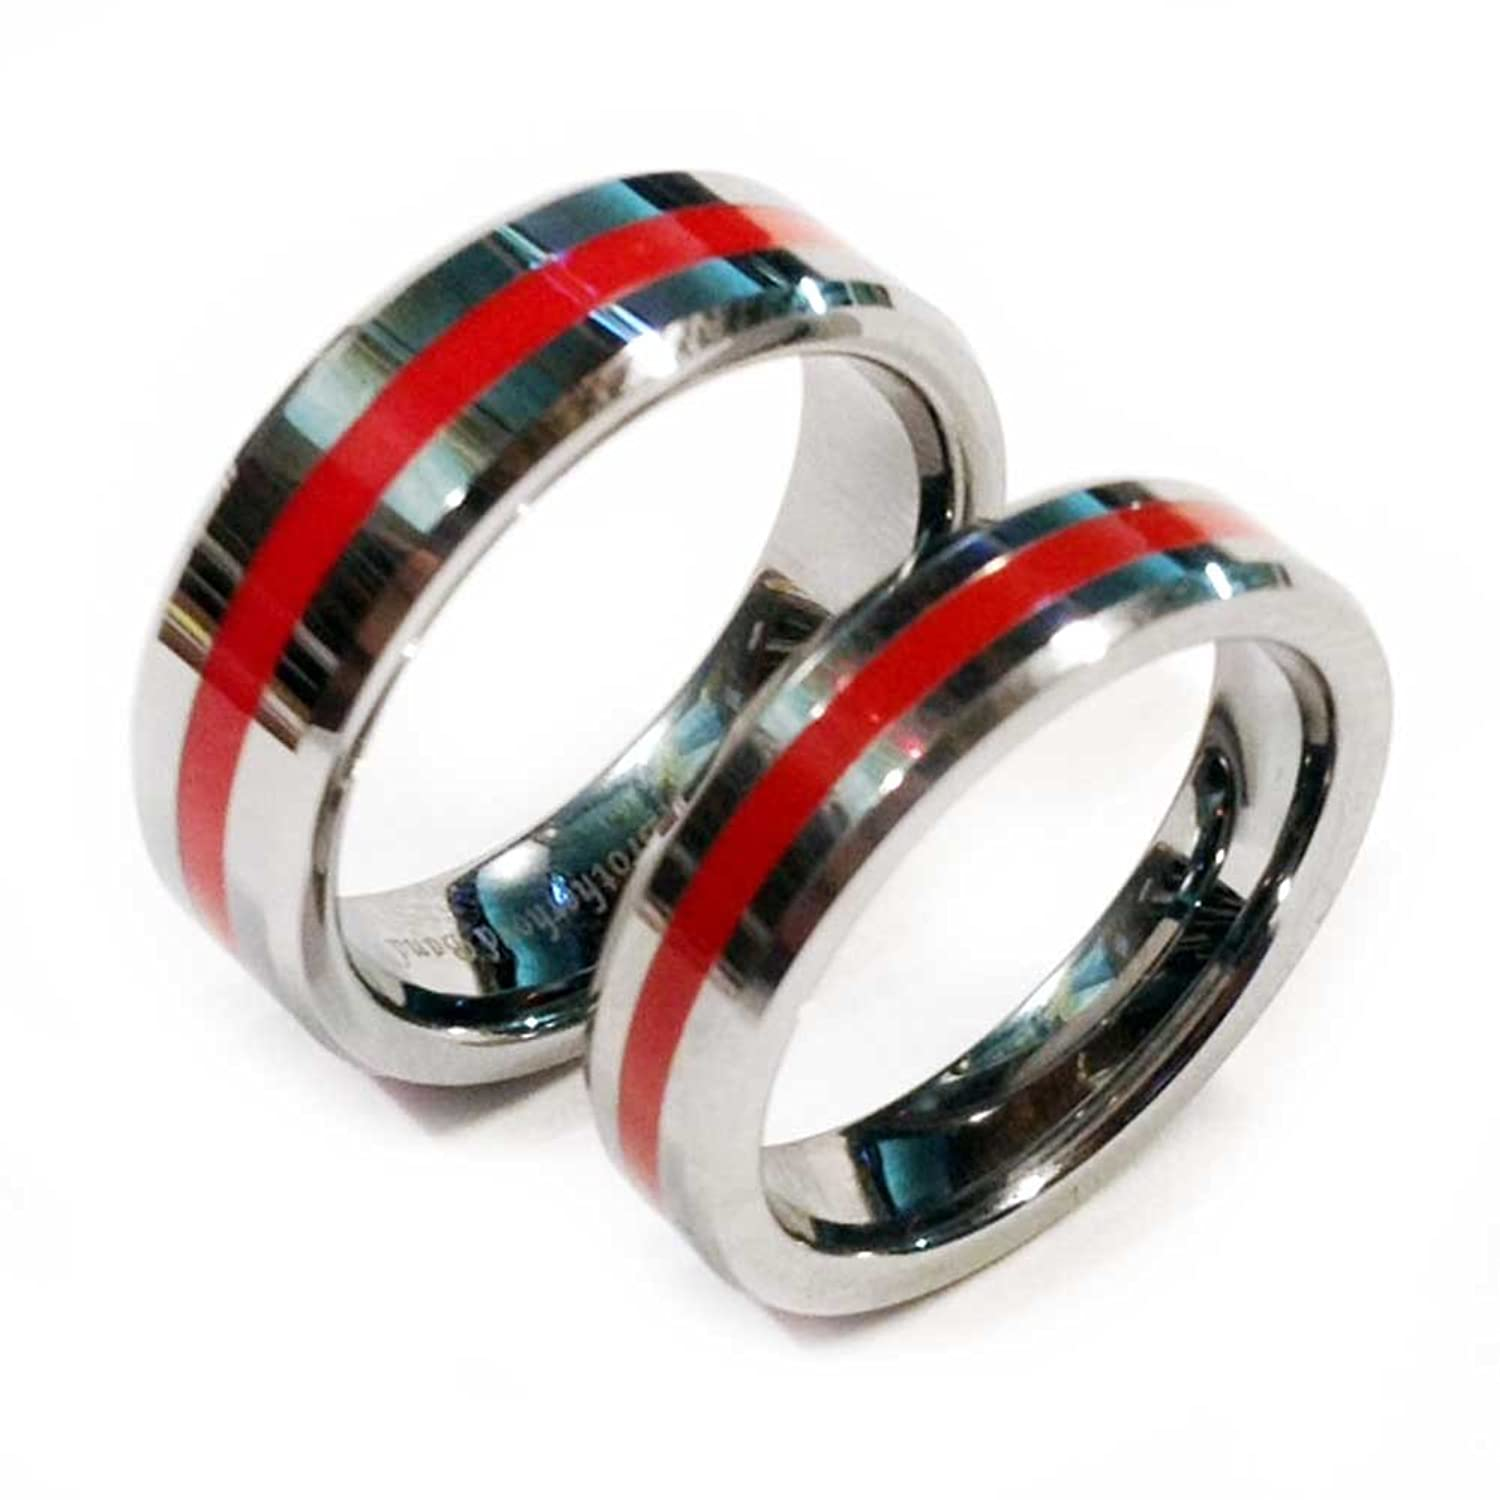 store s jewelry red boutique ring rectangle rings mens onyx bom product ottoman silver men